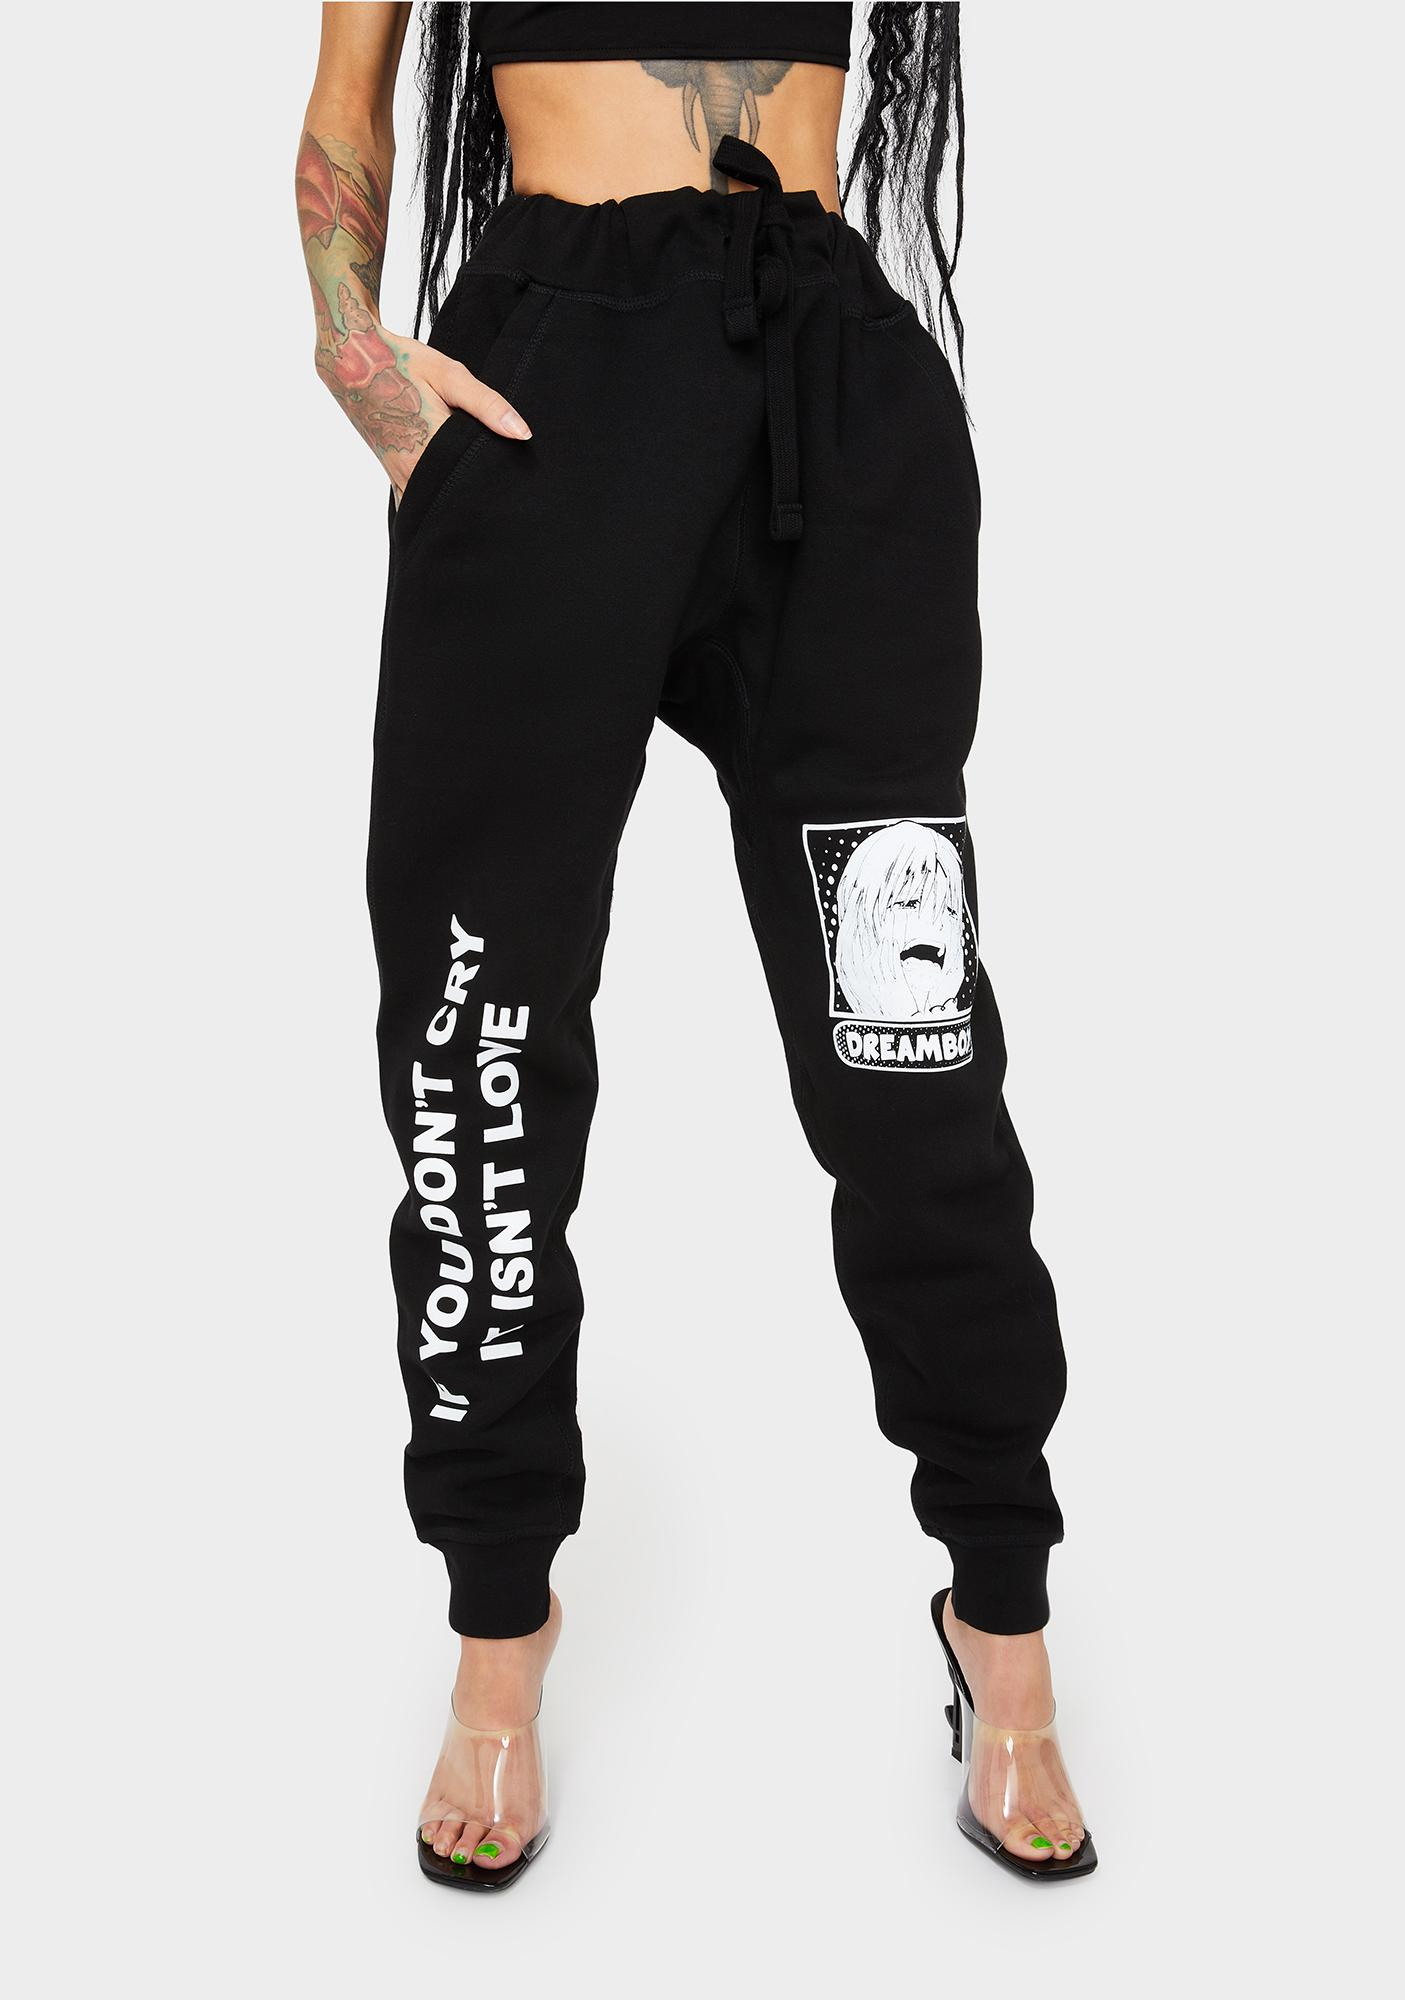 Dreamboy Don't Cry Jogger Sweatpants